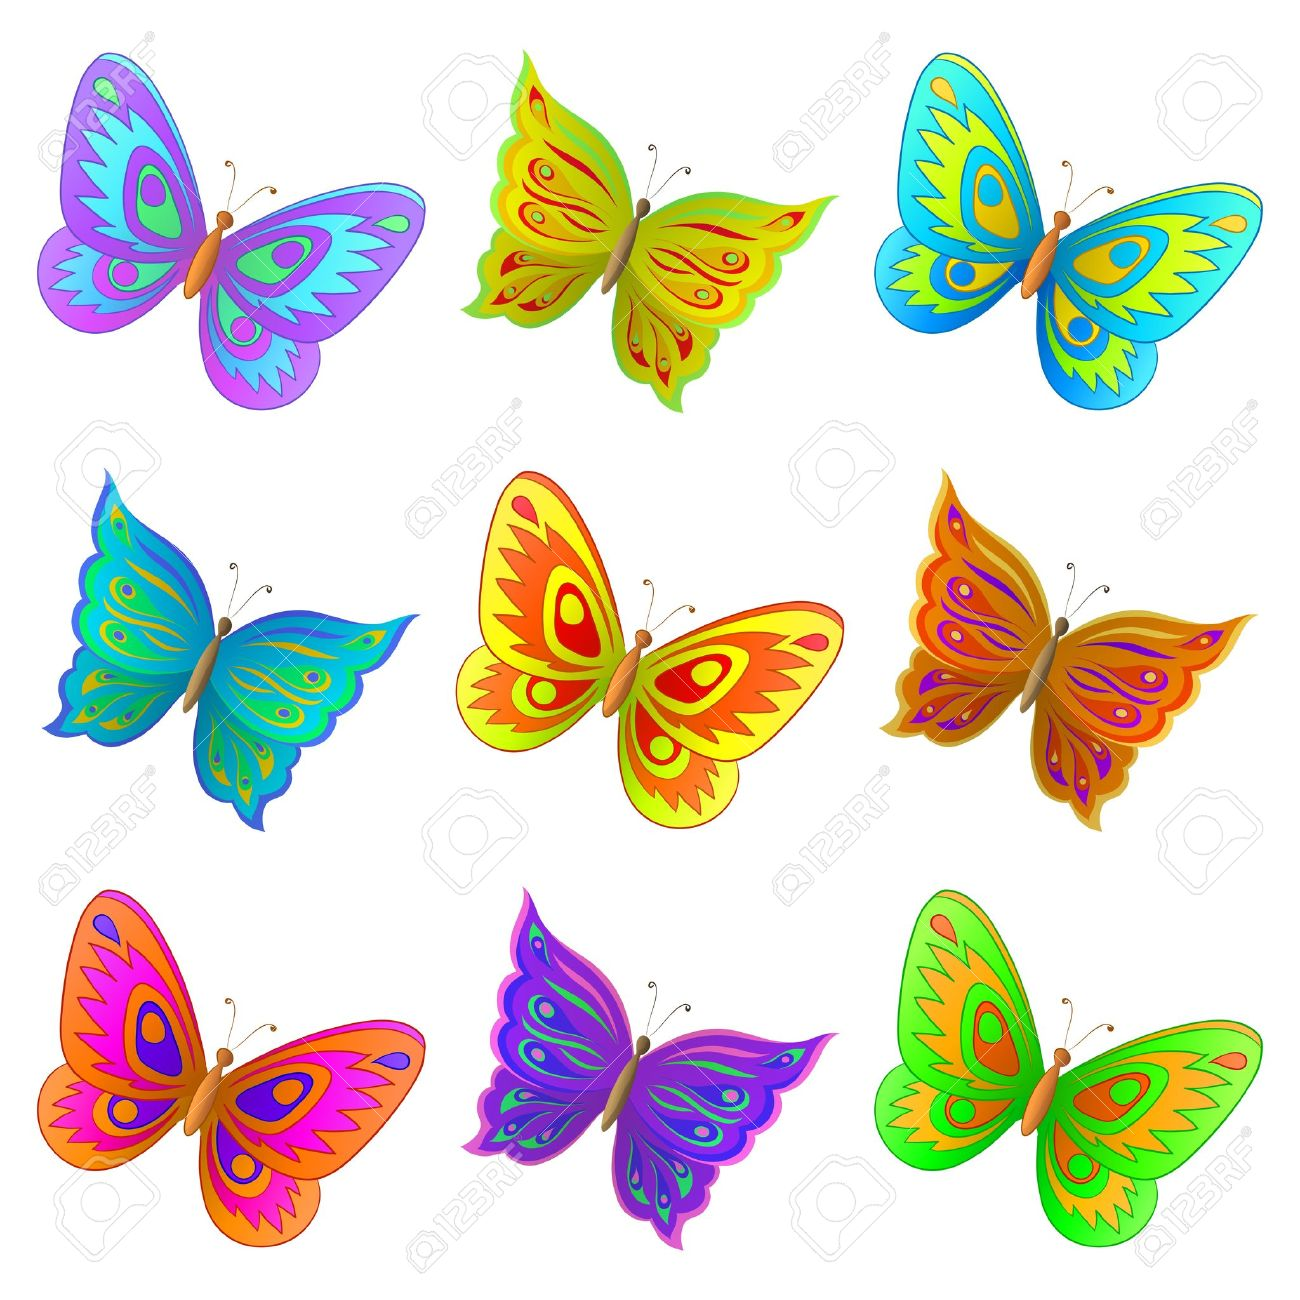 vector set from nine various color flying butterflies royalty